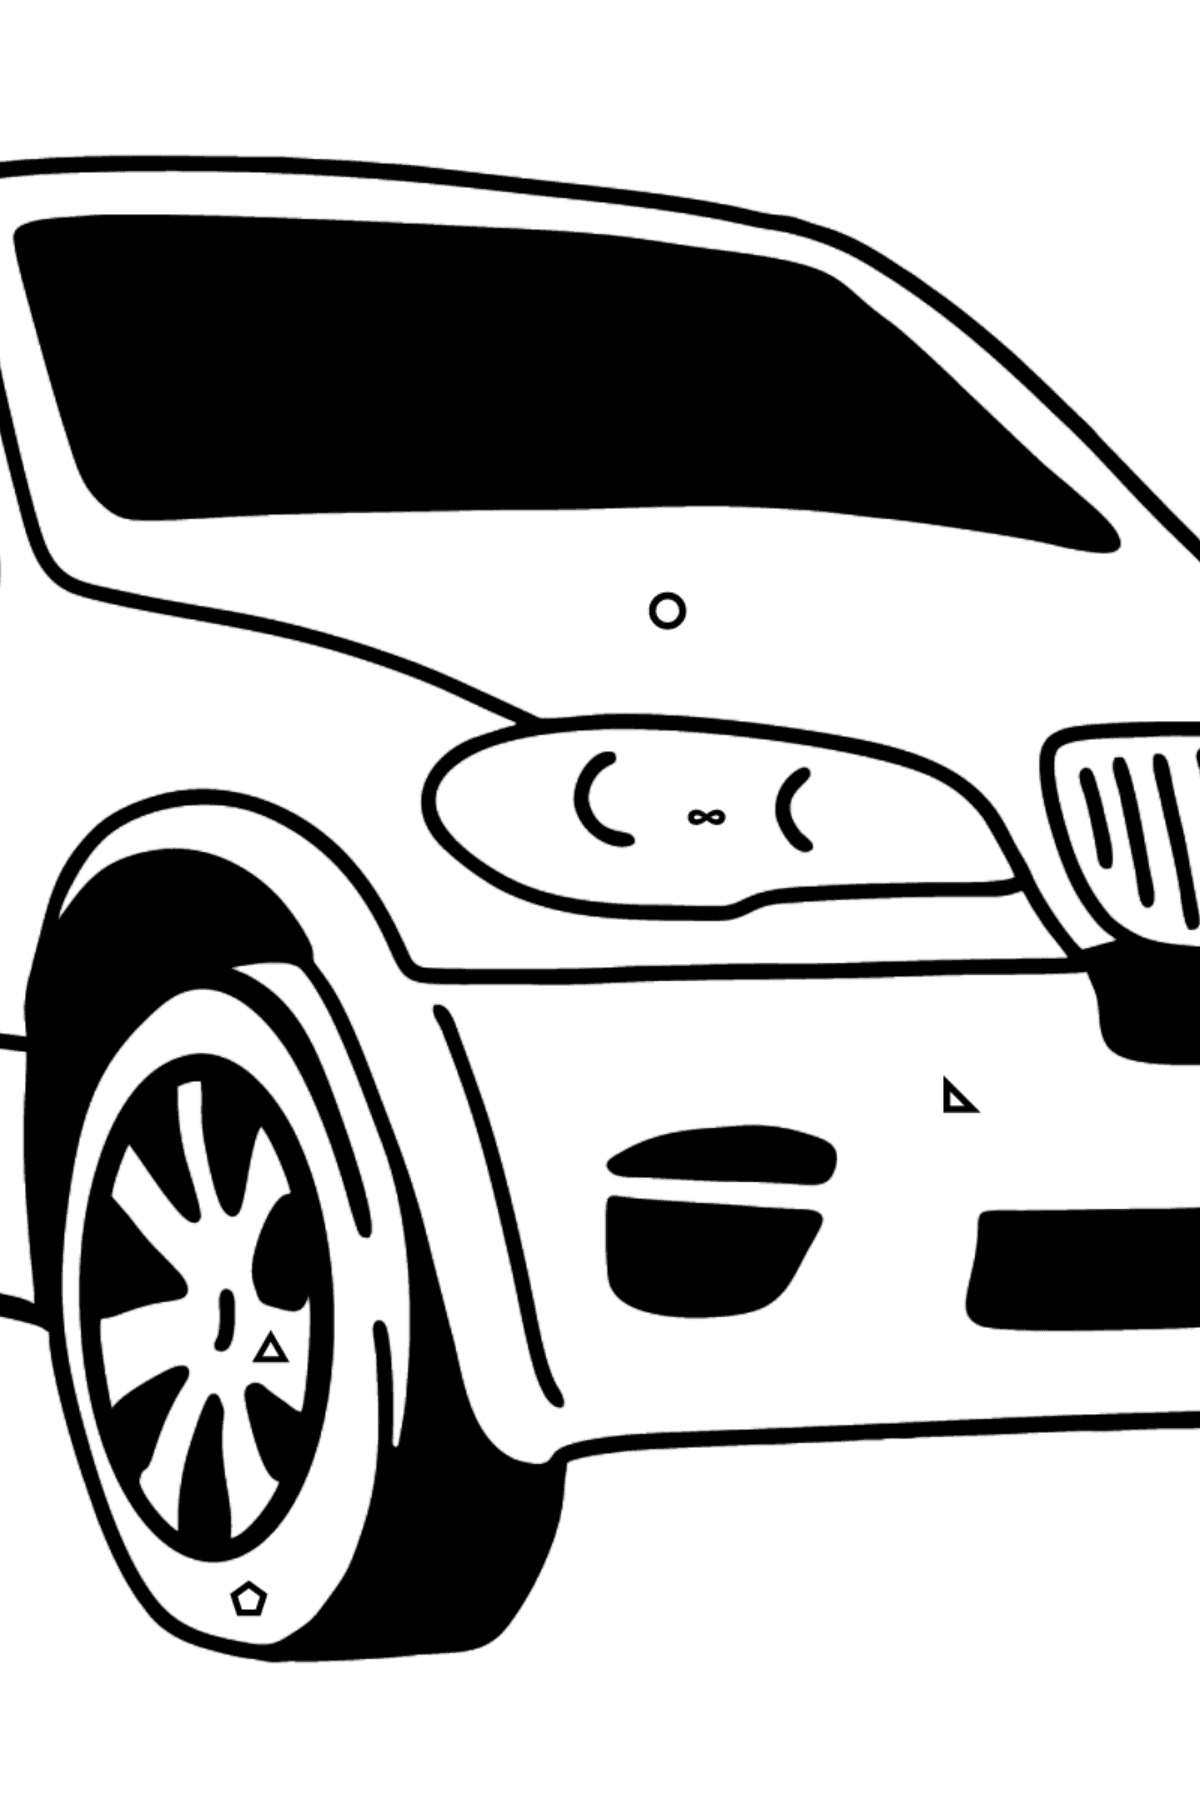 BMW X6 Crossover coloring page - Coloring by Symbols and Geometric Shapes for Kids